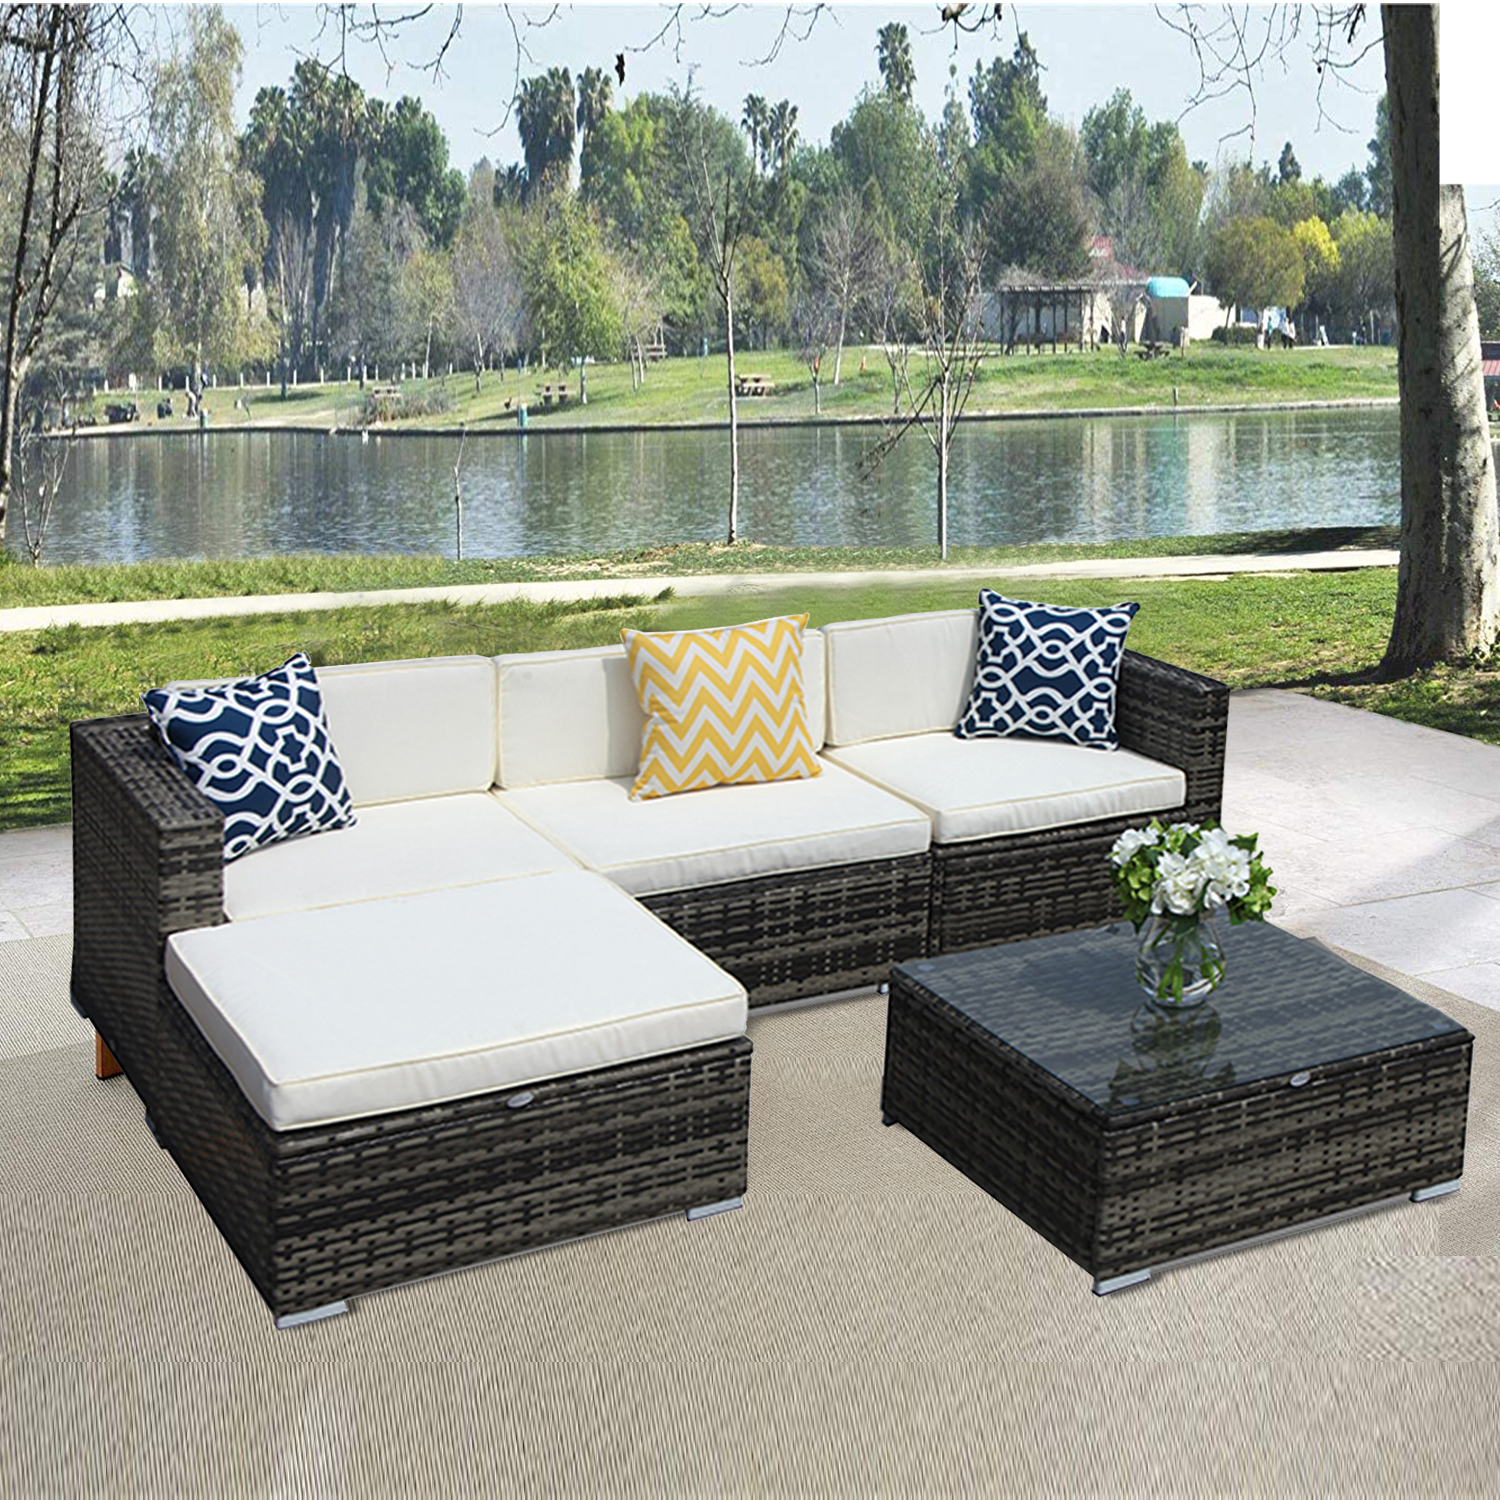 $30 Off 5pcs Patio Outdoor PE Wicker Rattan Sectional Furniture Set, Only $469.99